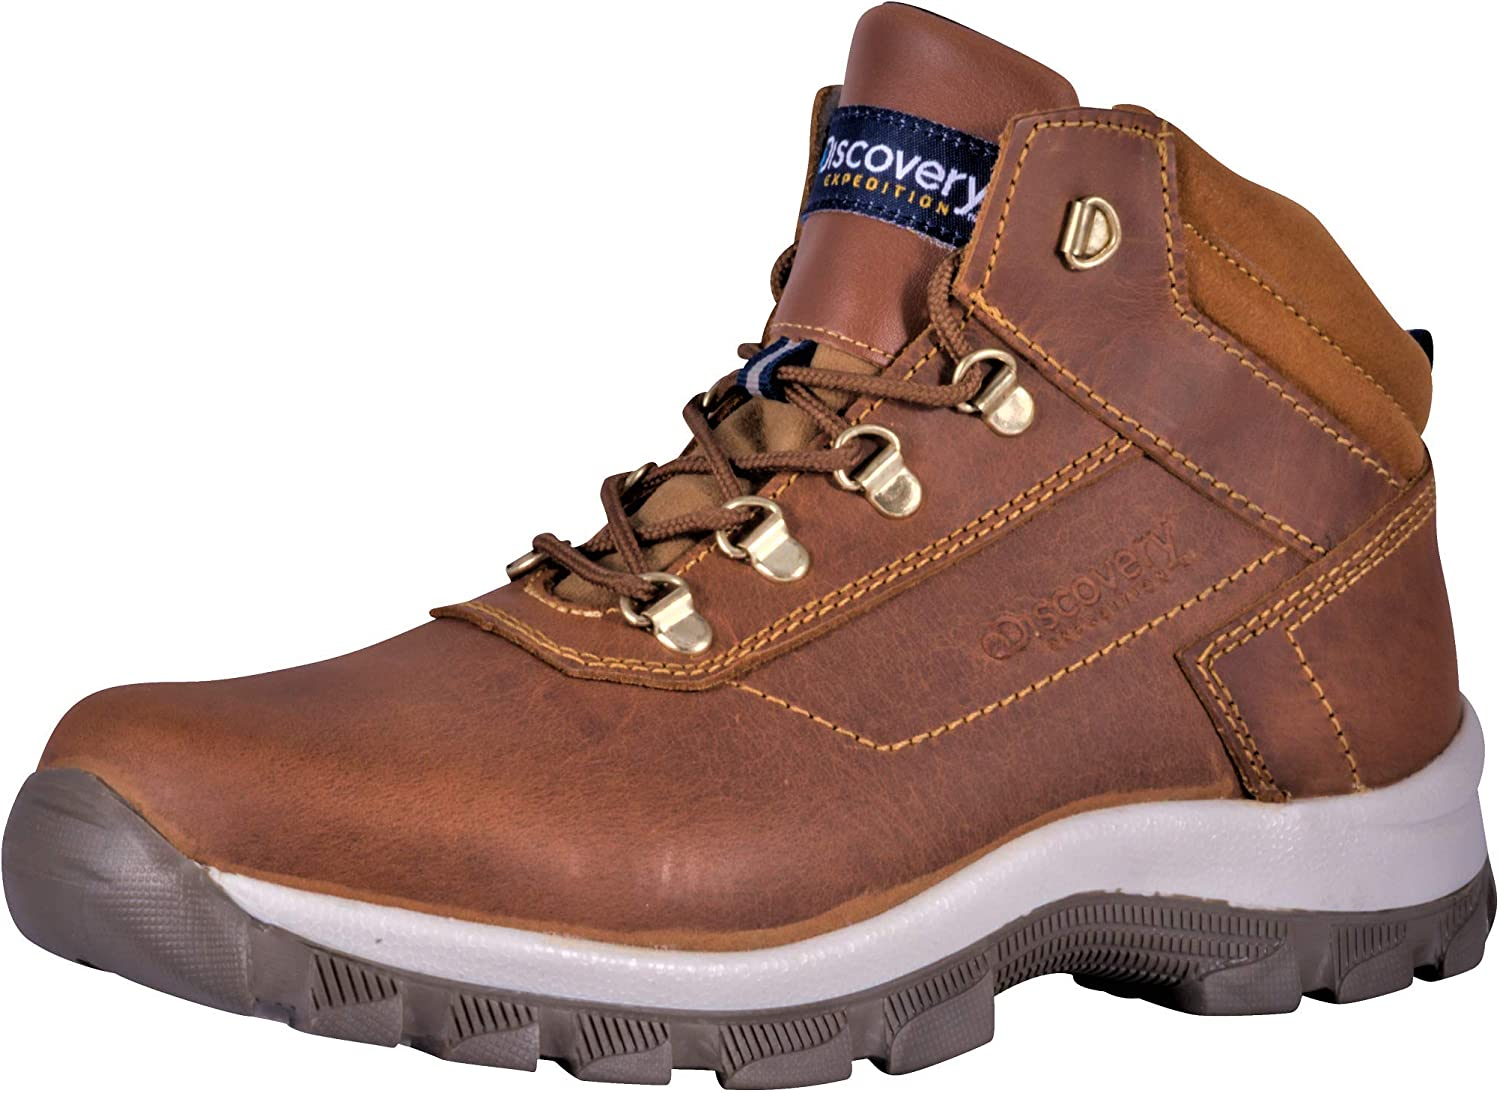 DS Ajusco 2411 Women's Hiking Camping Outdoor Ankle Boot